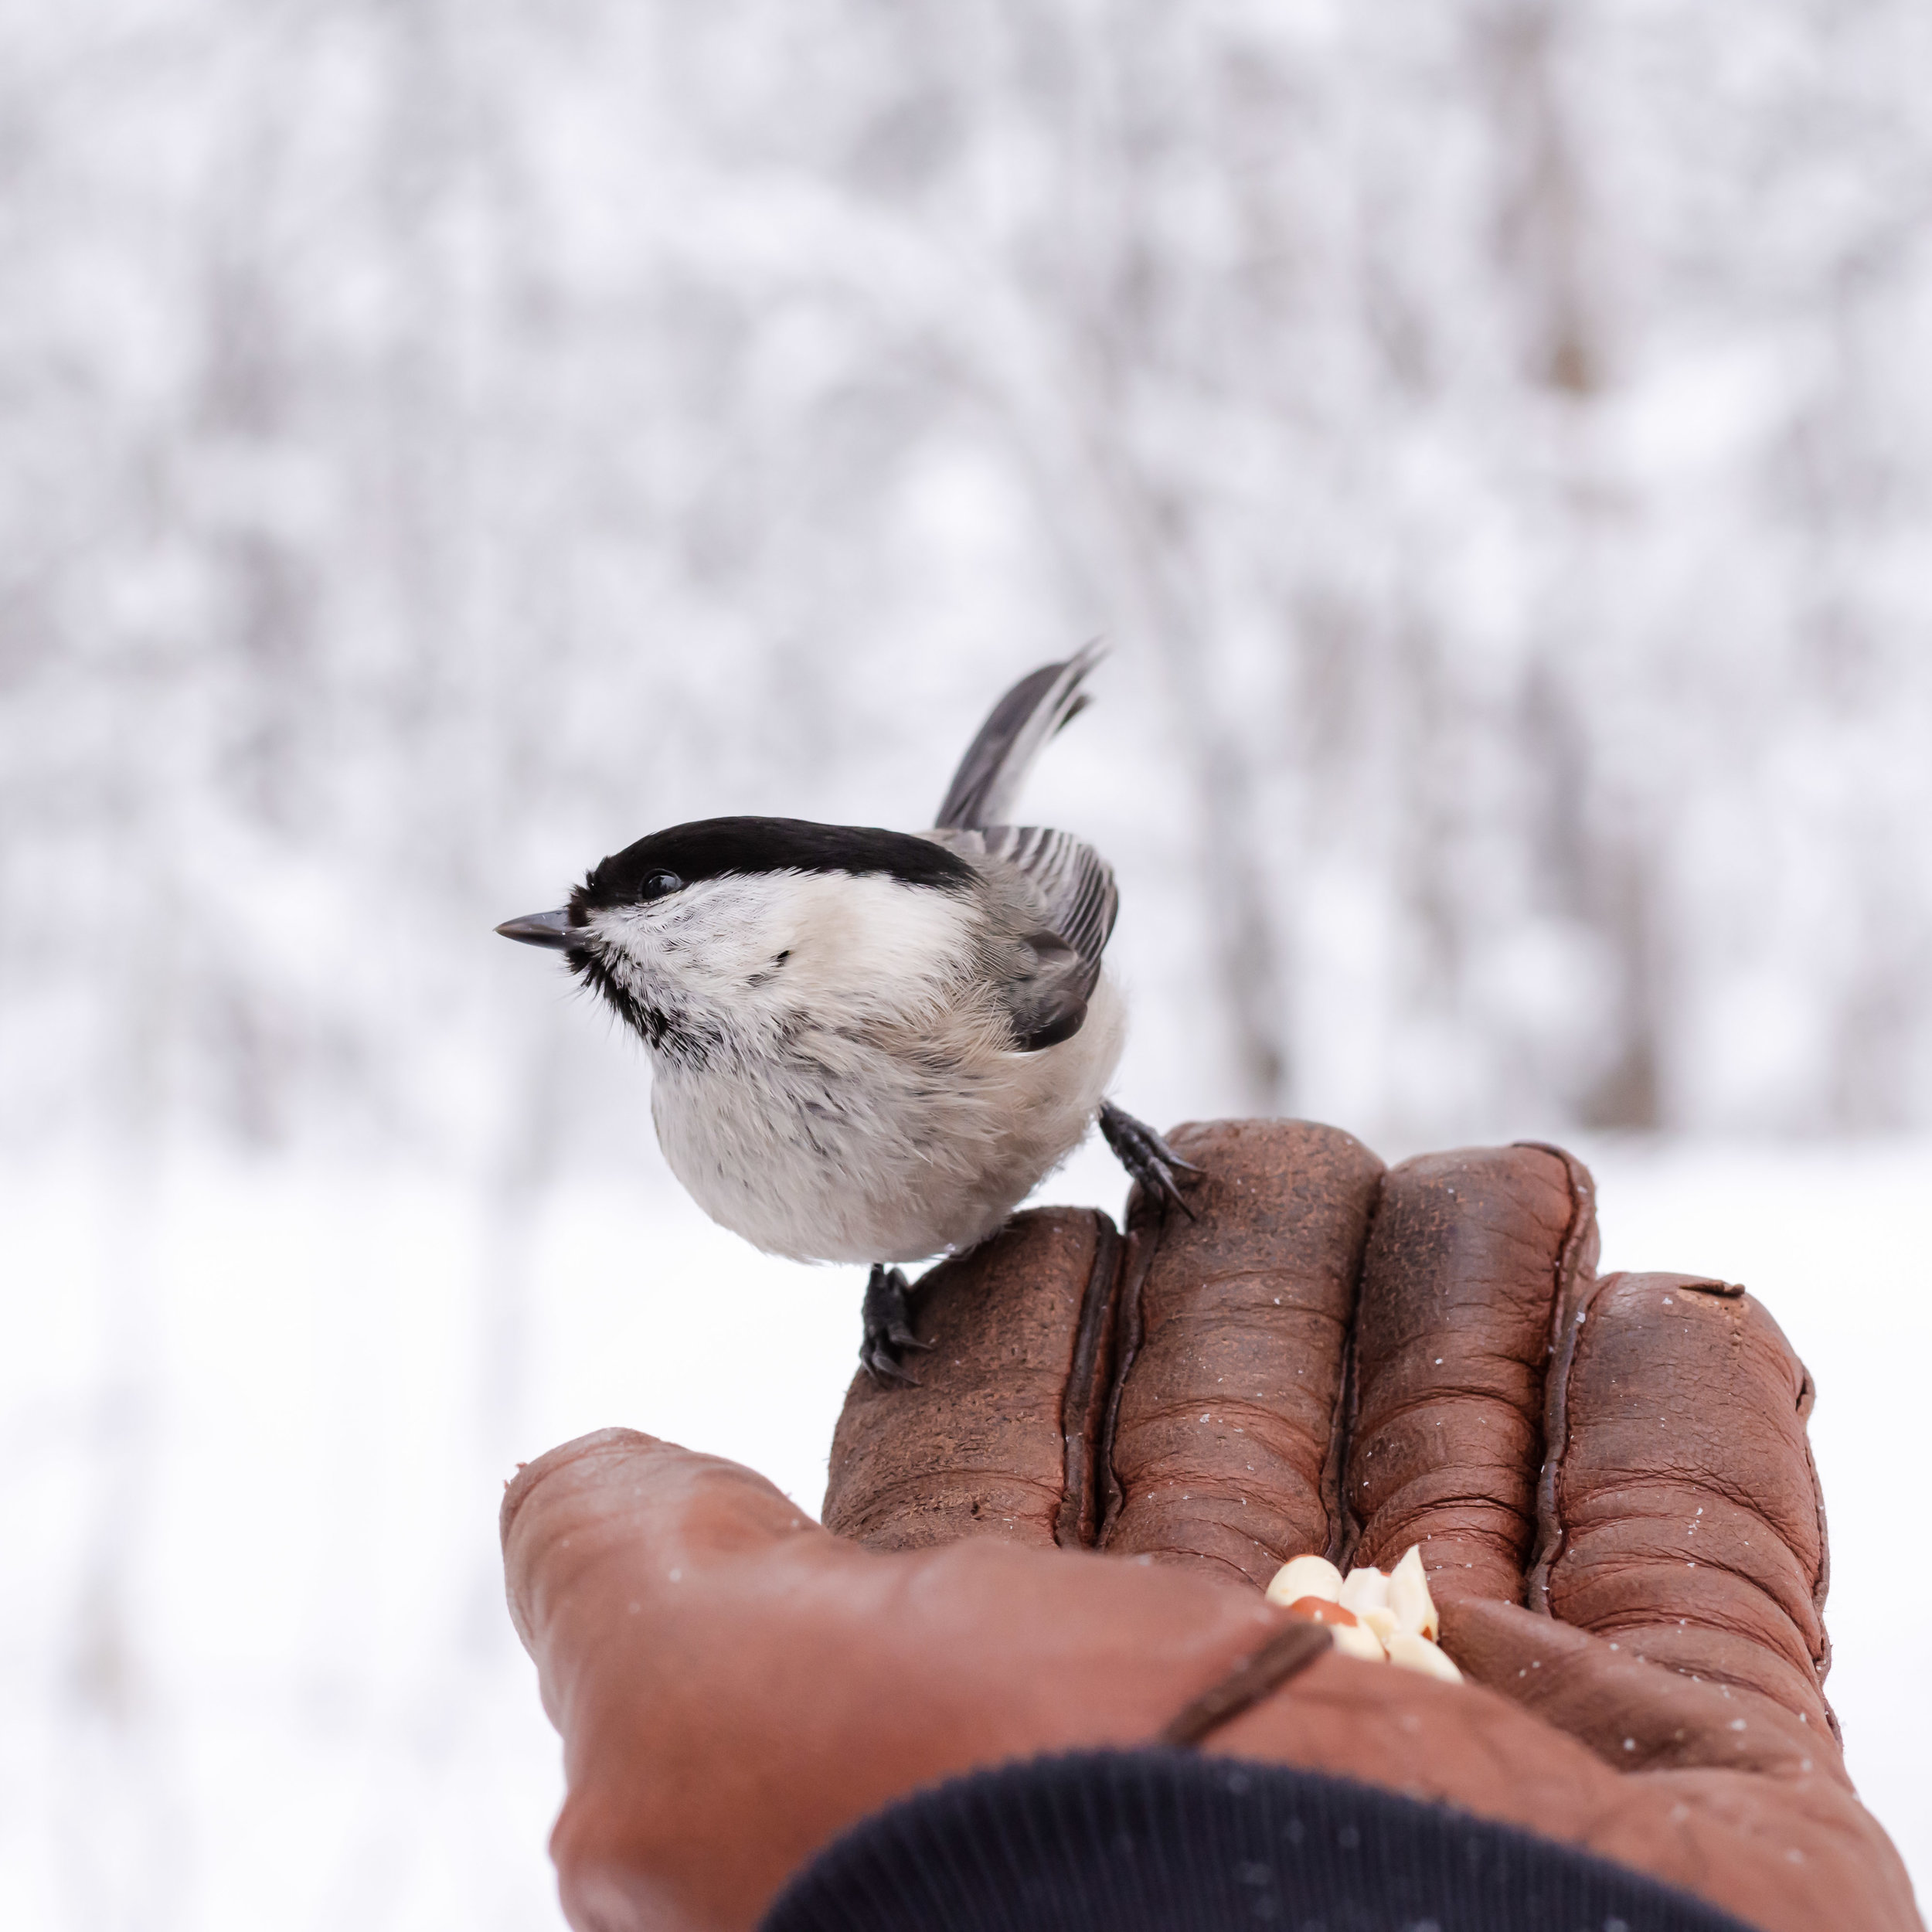 A Willow tit I managed to get to sit on my hand after many hours of trying.